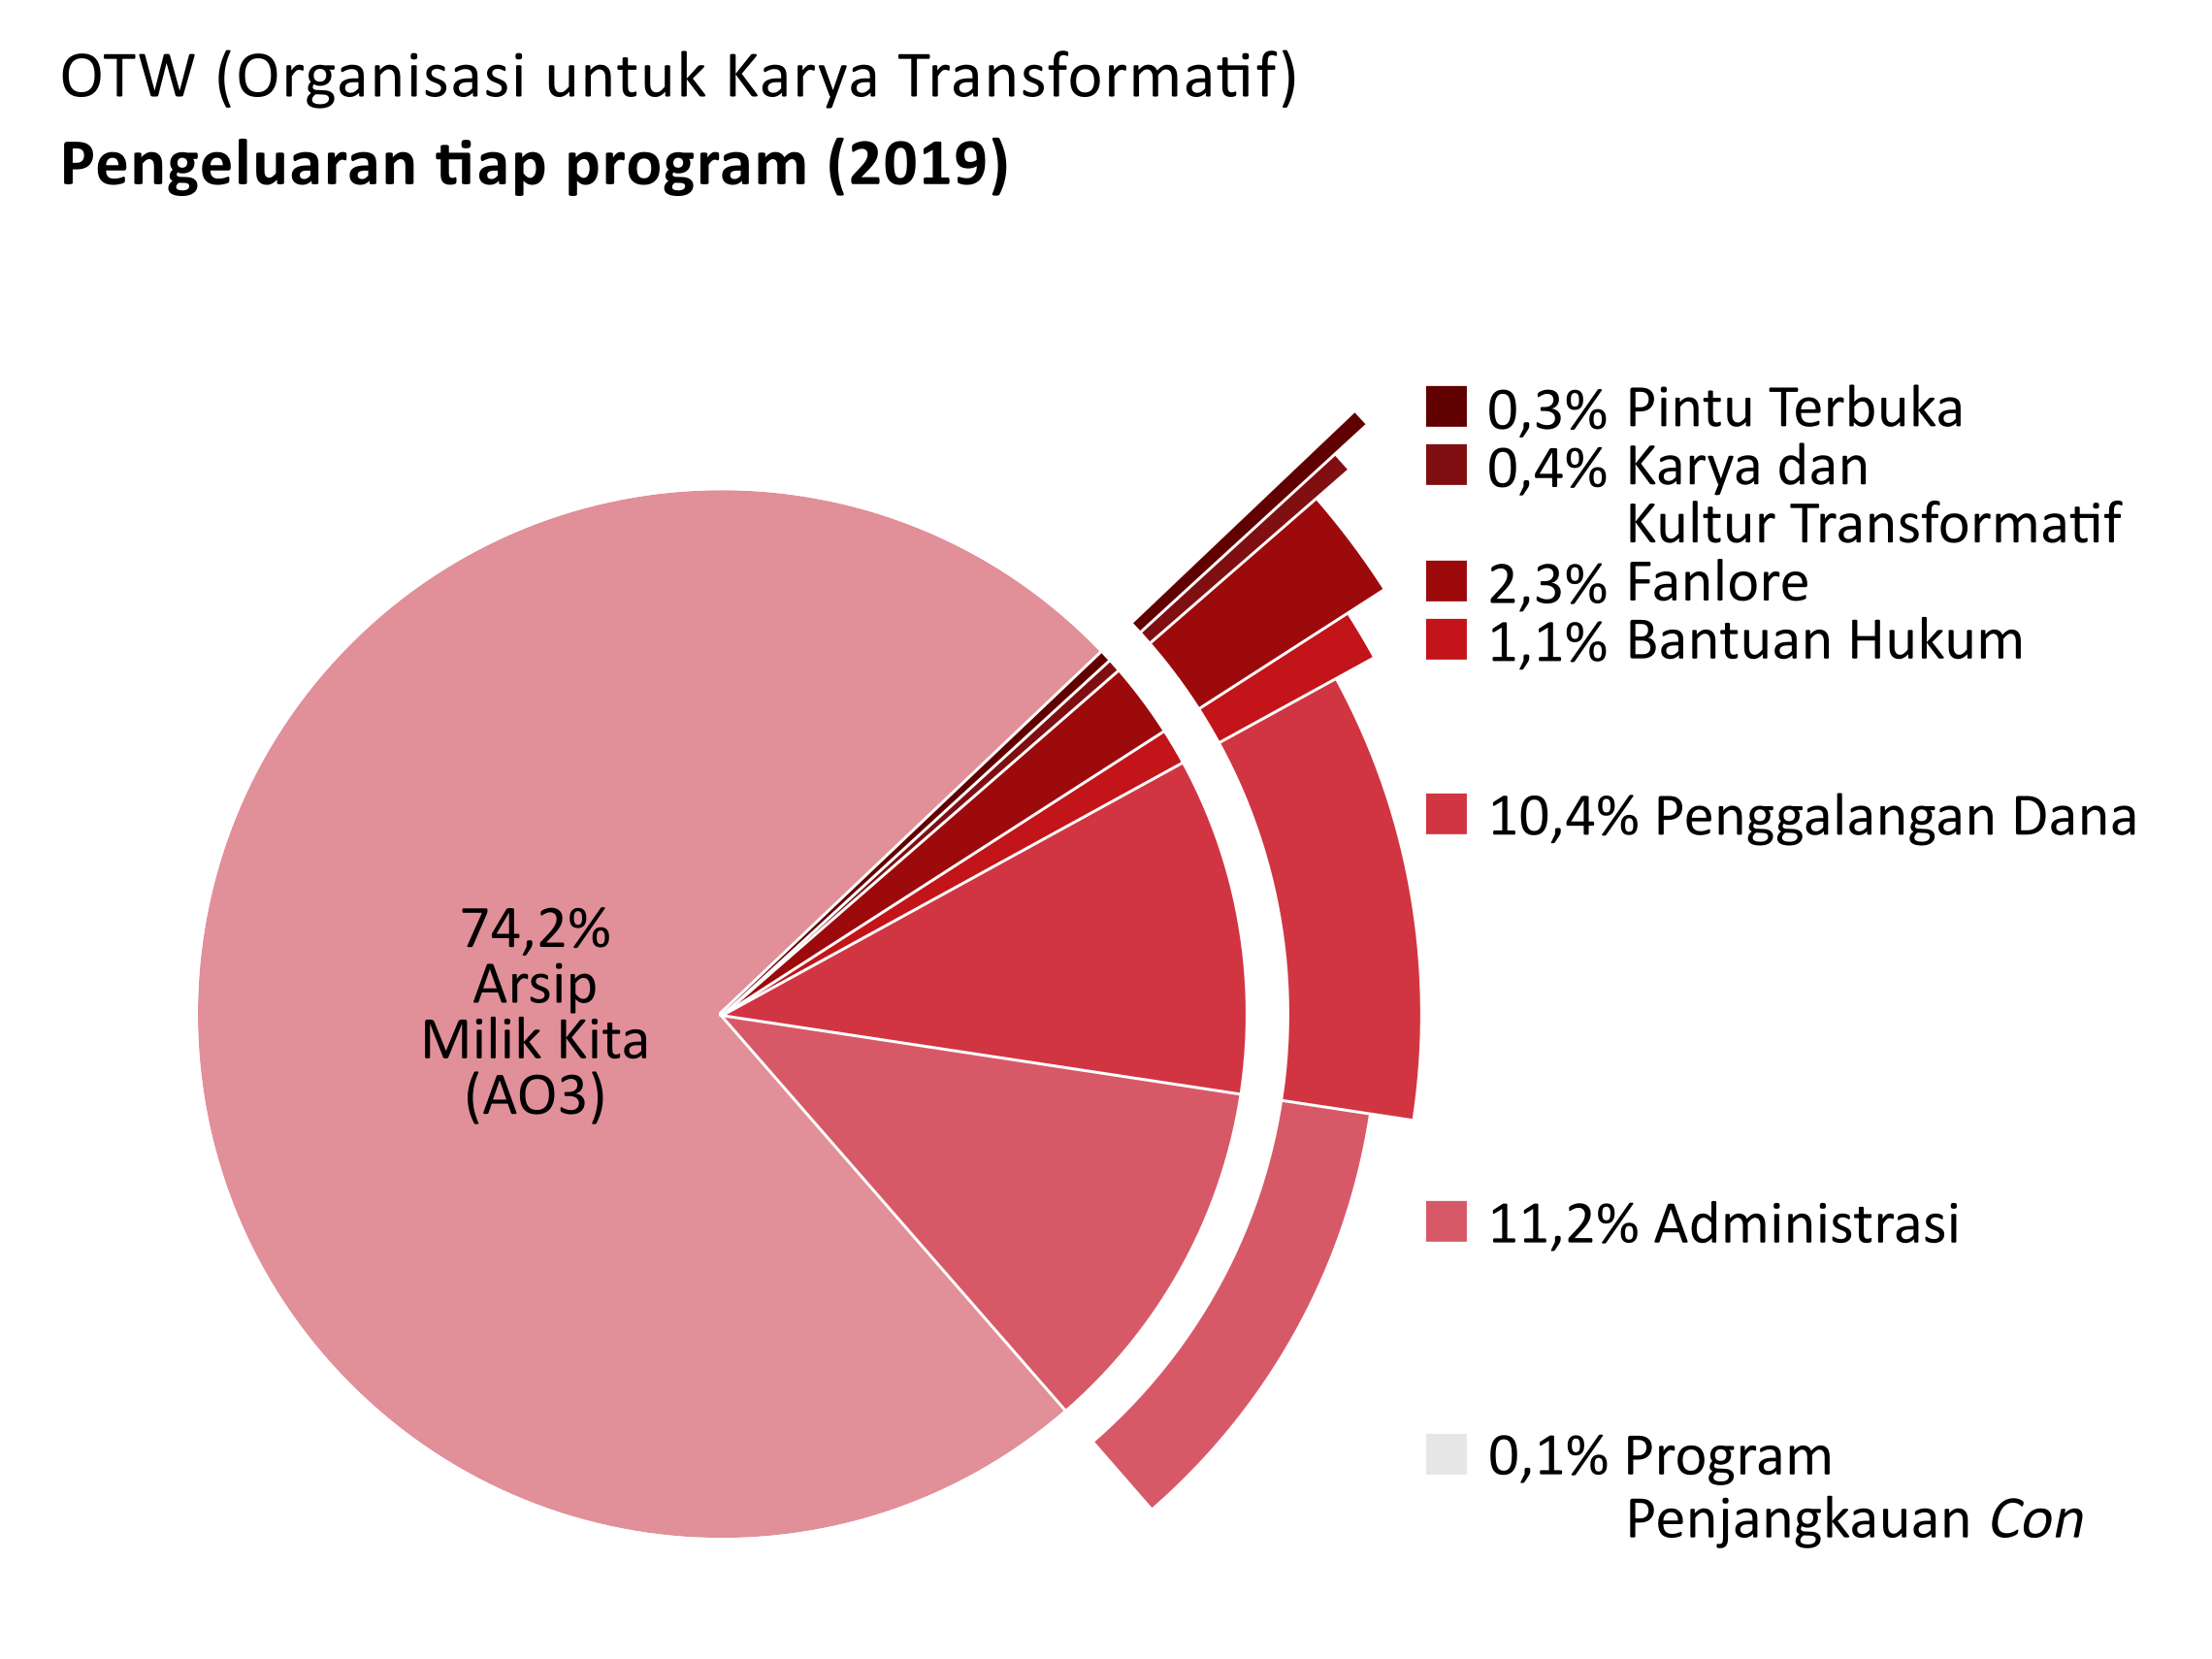 Pengeluaran per program: Archive of Our Own – AO3 (Arsip Milik Kita): 74,2%. Open Doors (Pintu Terbuka): 0,3%. Transformative Works and Cultures(Karya dan Kultur Transformatif): 0,4%. Fanlore: 2,3%. Legal Advocacy (Bantuan Hukum): 1,1%. Con Outreach (Program Penjangkauan Con): 0.1%. Admin: 11,2%. Penggalangan Dana: 10,4%.